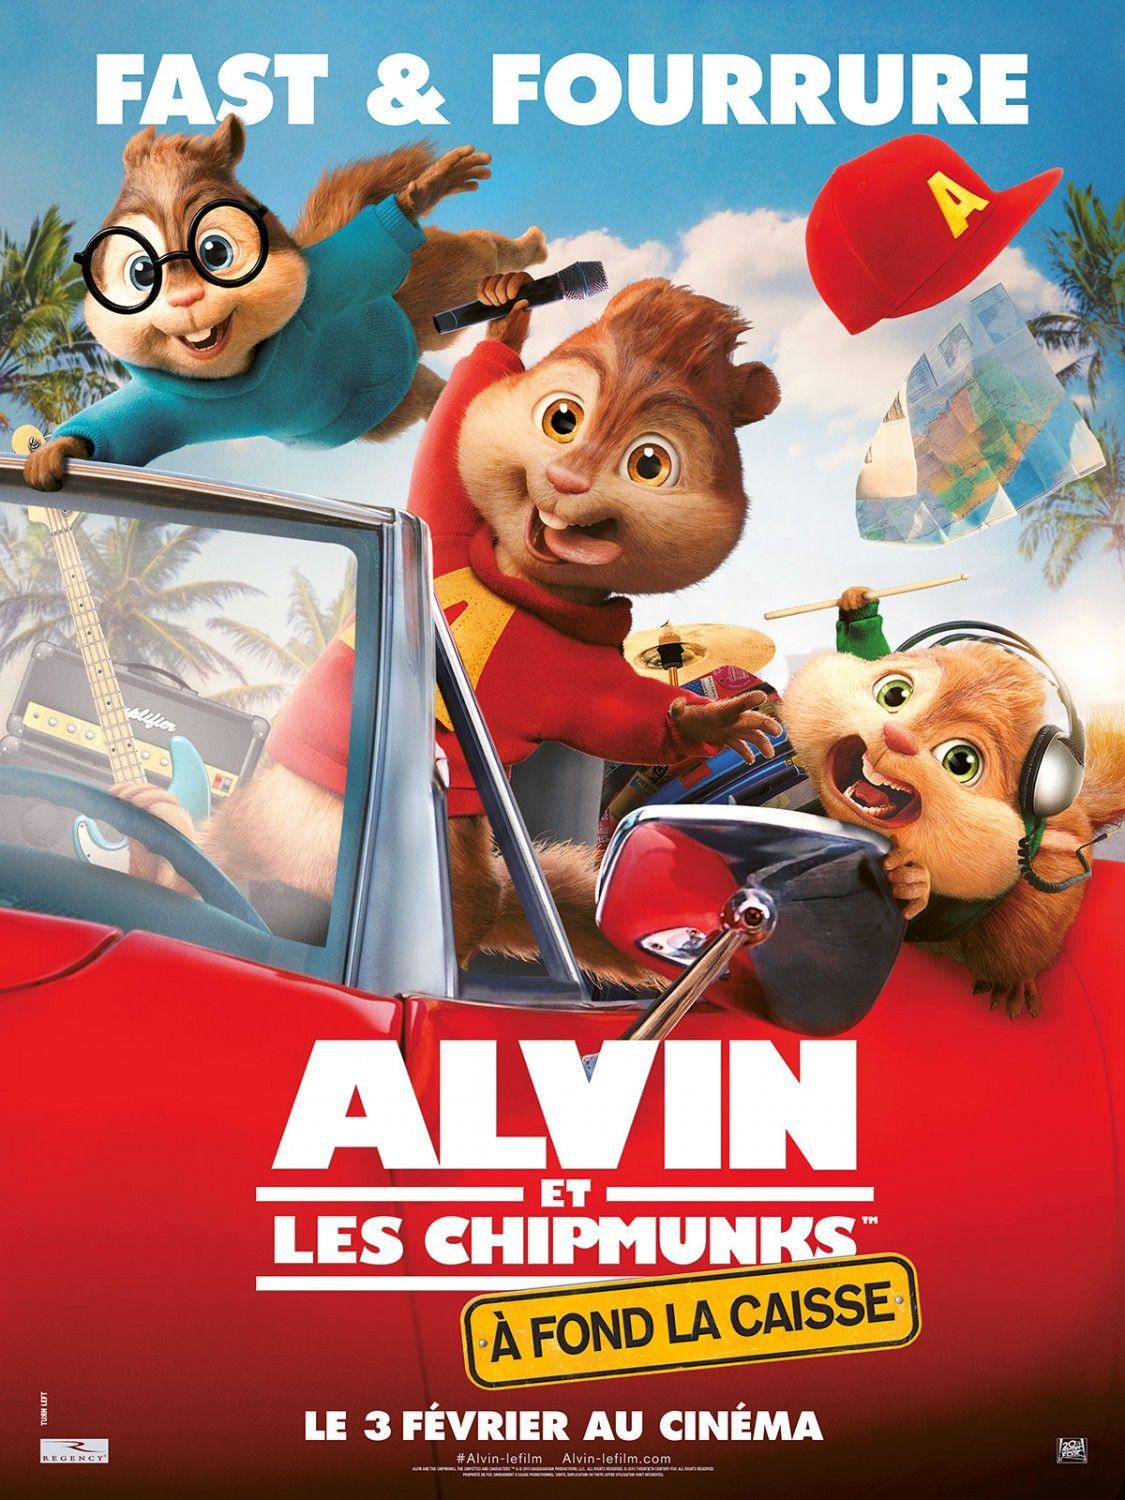 Alvin And The Chipmunks The Road Chip Trailer Clips Images And Posters Alvin And The Chipmunks Chipmunks Alvin And Chipmunks Movie